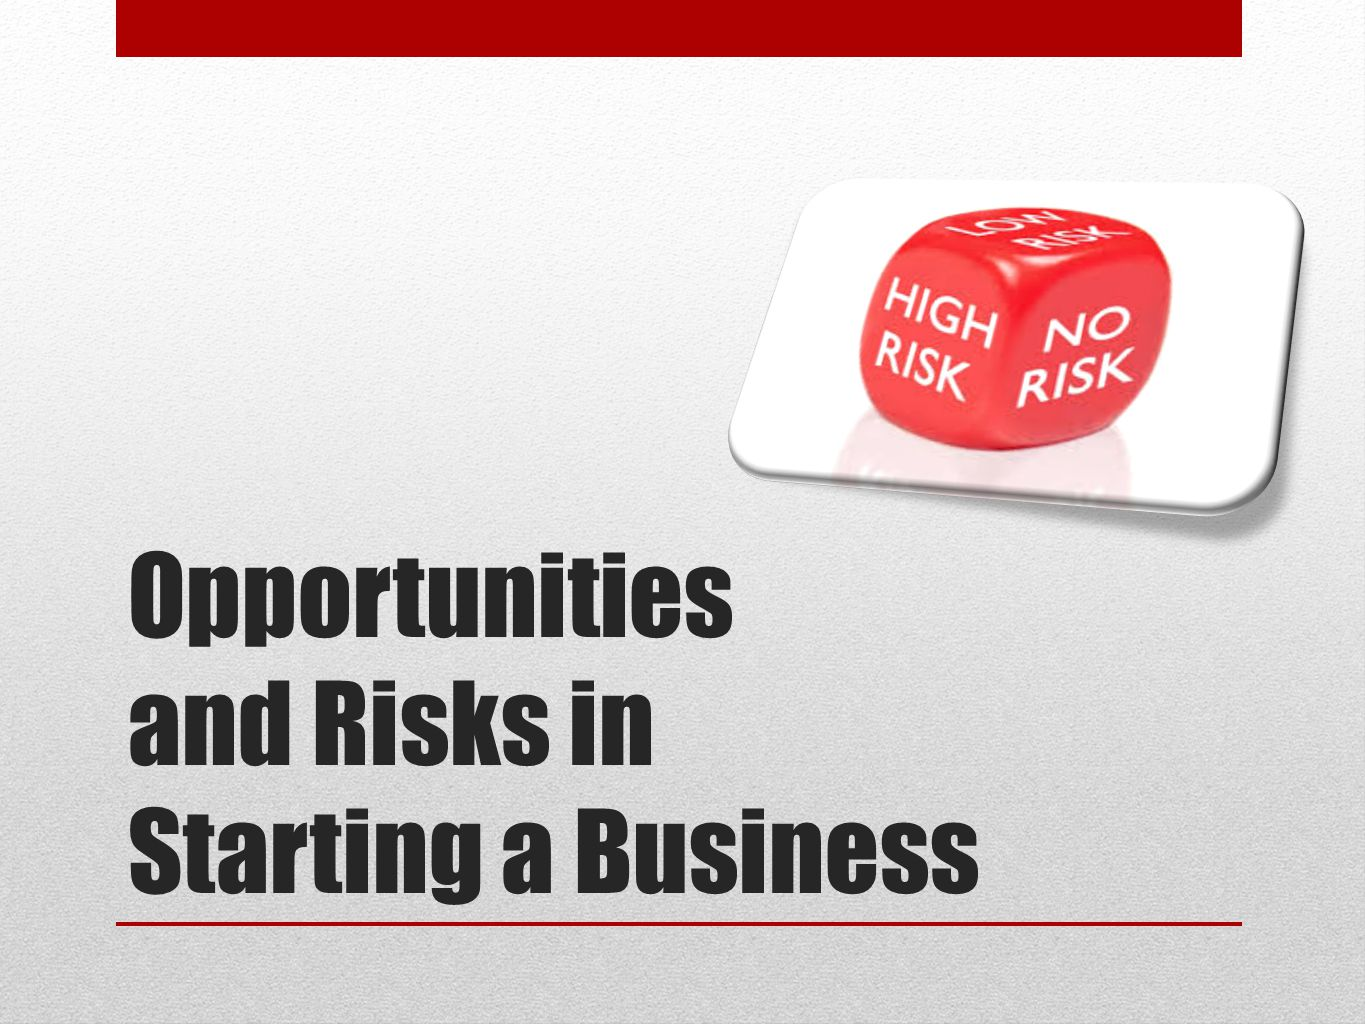 Opportunities and Risks in Starting a Business